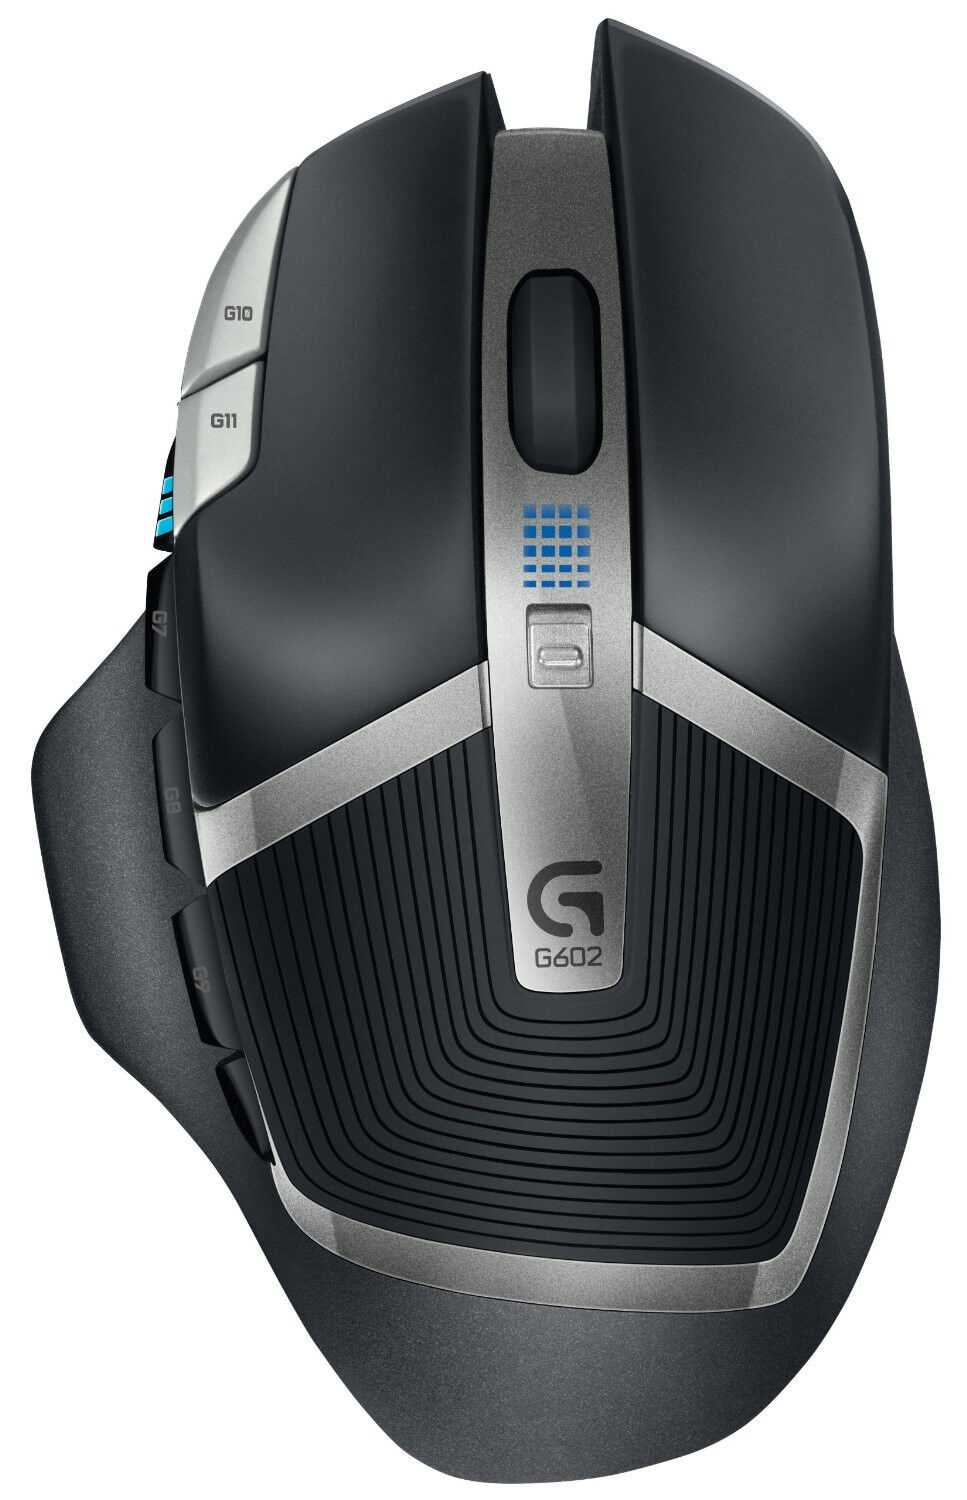 Best Wireless Gaming Mouse: Logitech G602